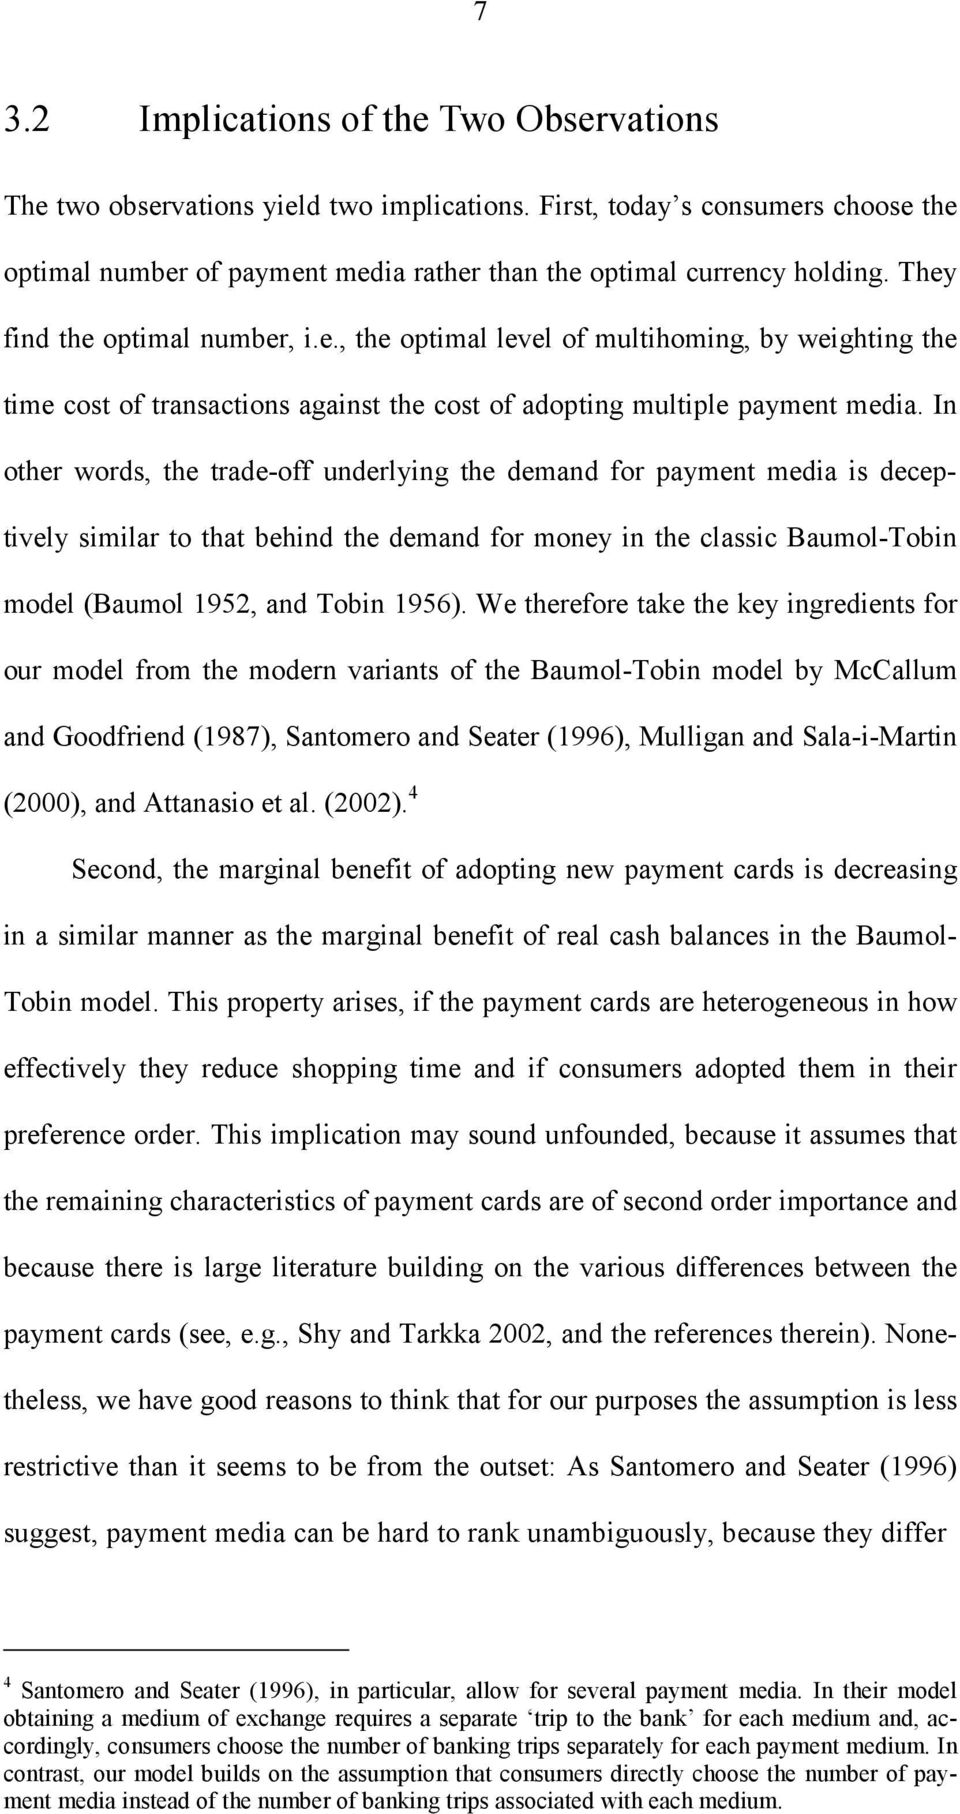 In other words, the trade-off underlyng the demand for payment meda s deceptvely smlar to that behnd the demand for money n the classc Baumol-Tobn model (Baumol 1952, and Tobn 1956).